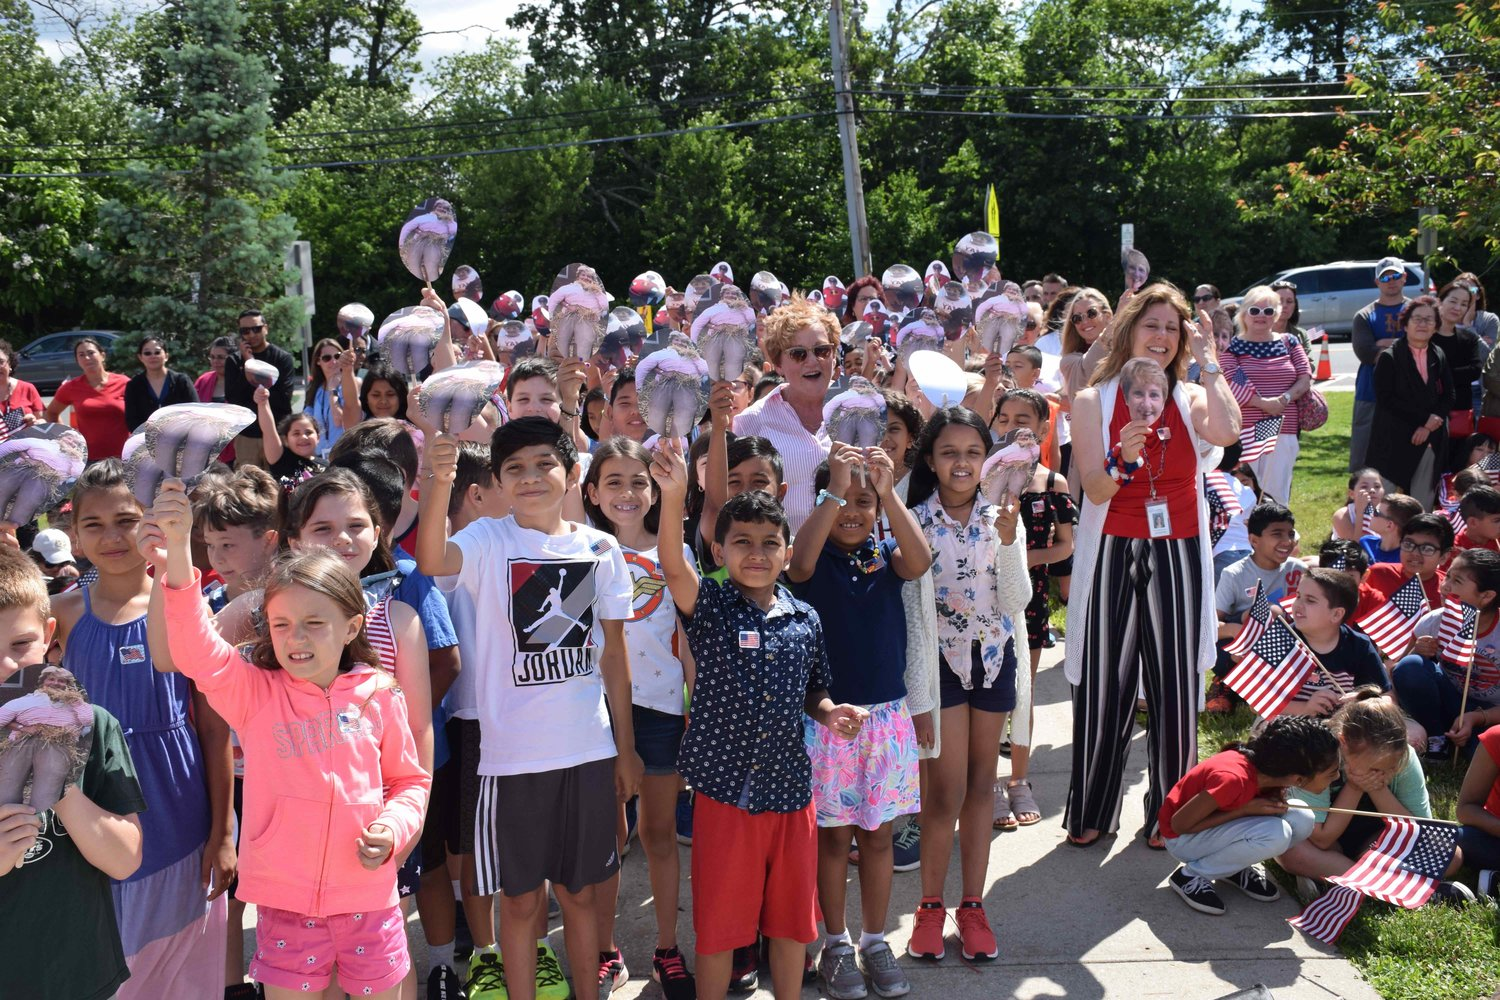 Meadowbrook Elementary School students and community members gathered on June 14 to honor Assistant Principal Gail Gallucci with a surprise ceremony.